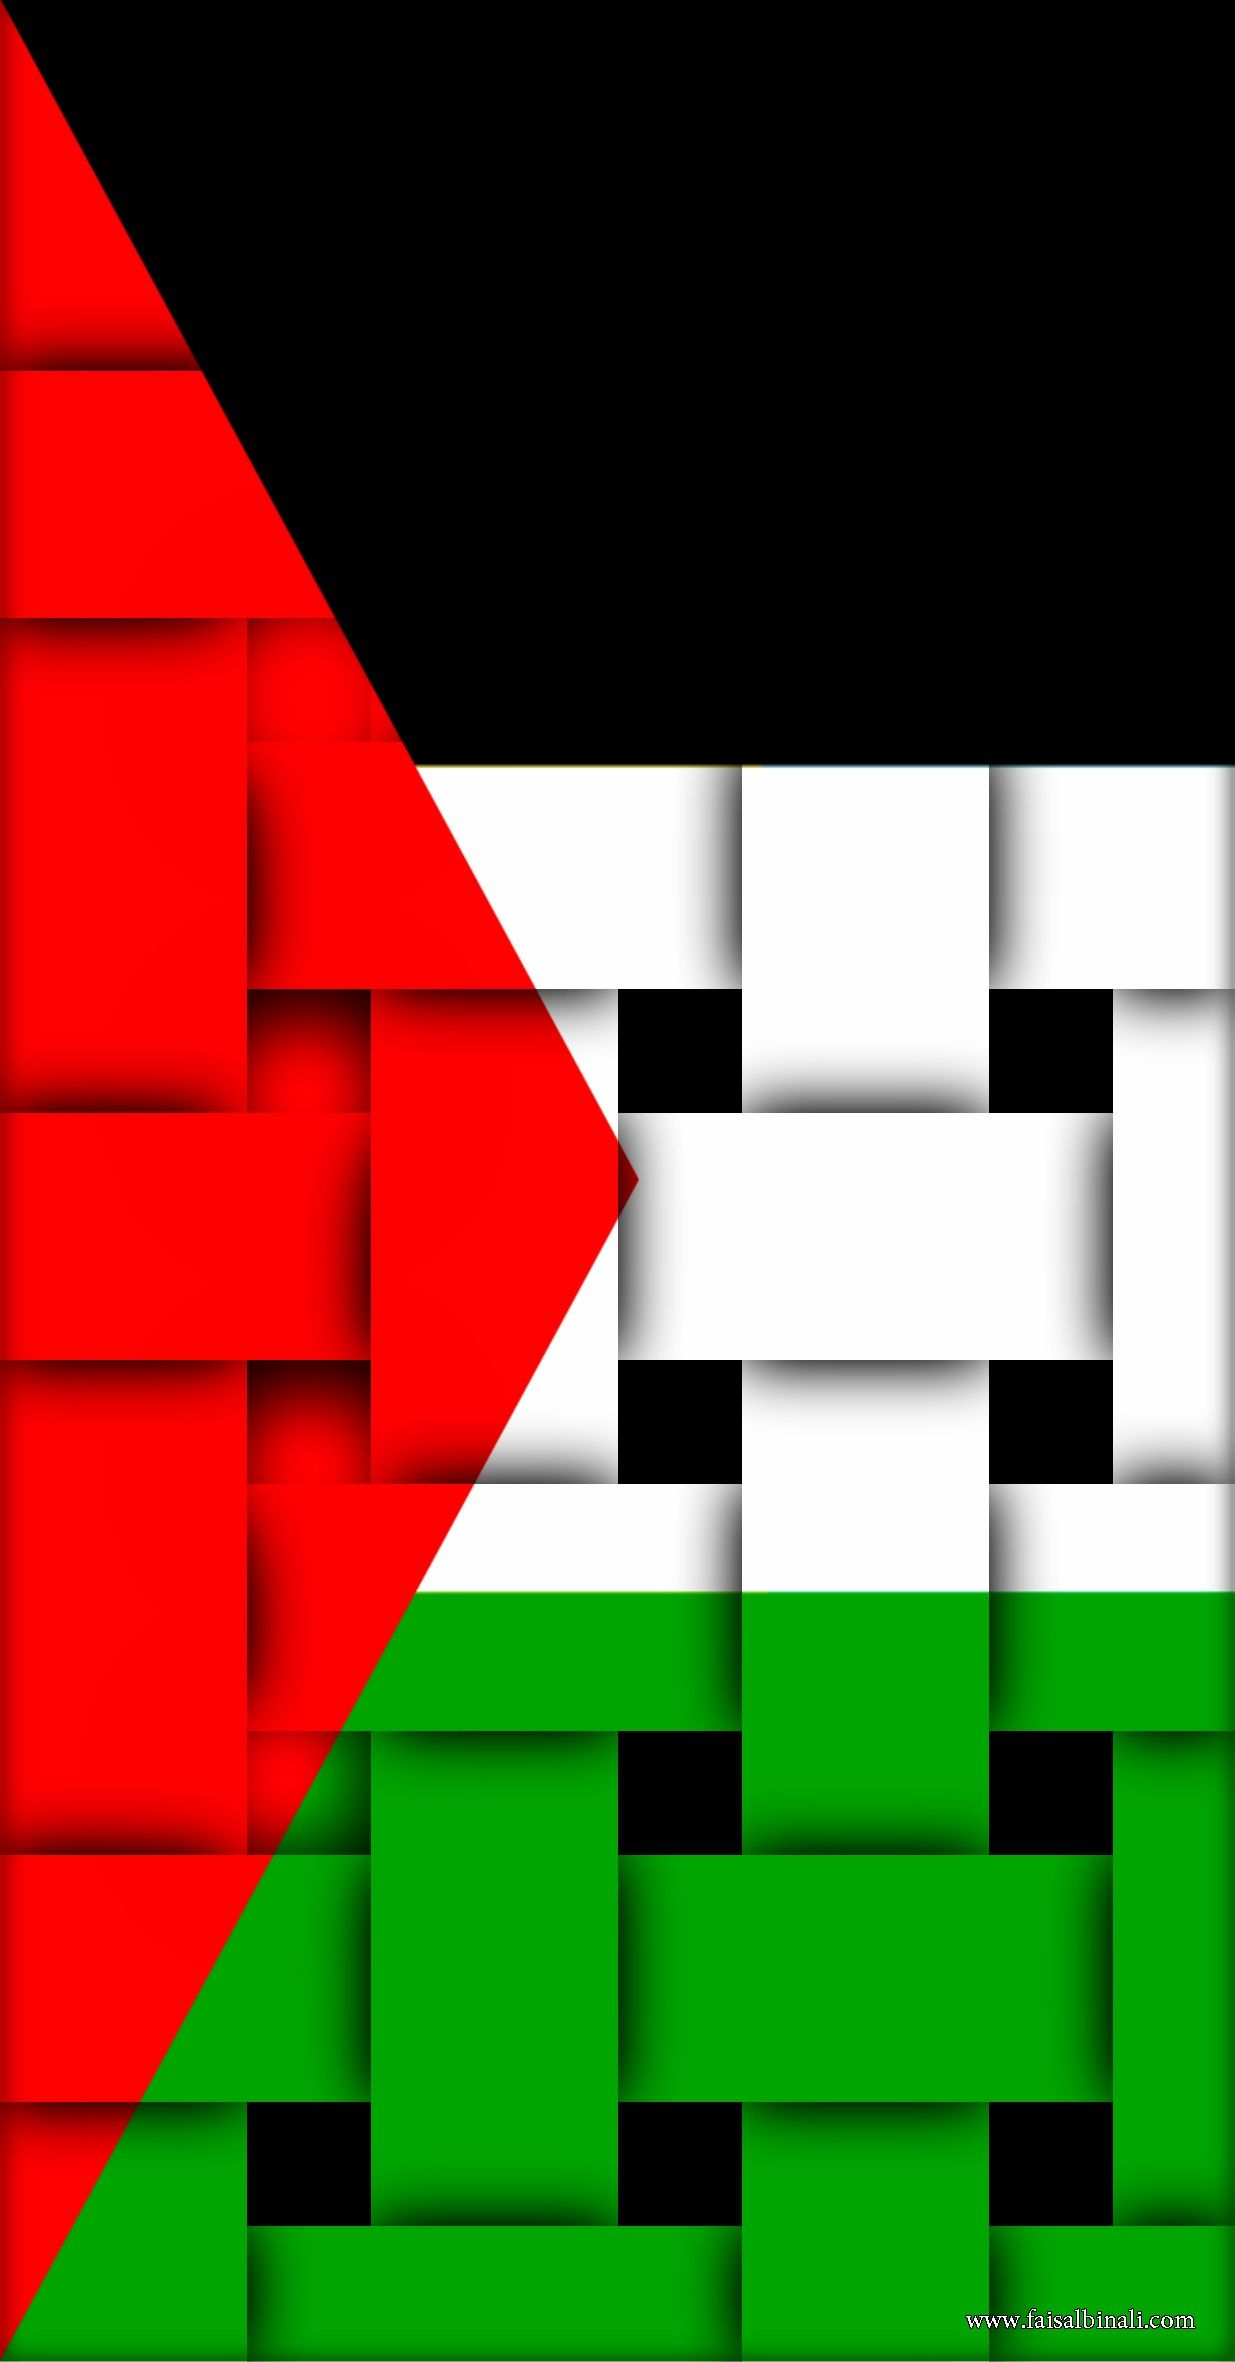 Palestine flags artwork wallpapers for smartphones tablets and laptops penyimpanan - Palestine flag wallpaper hd ...